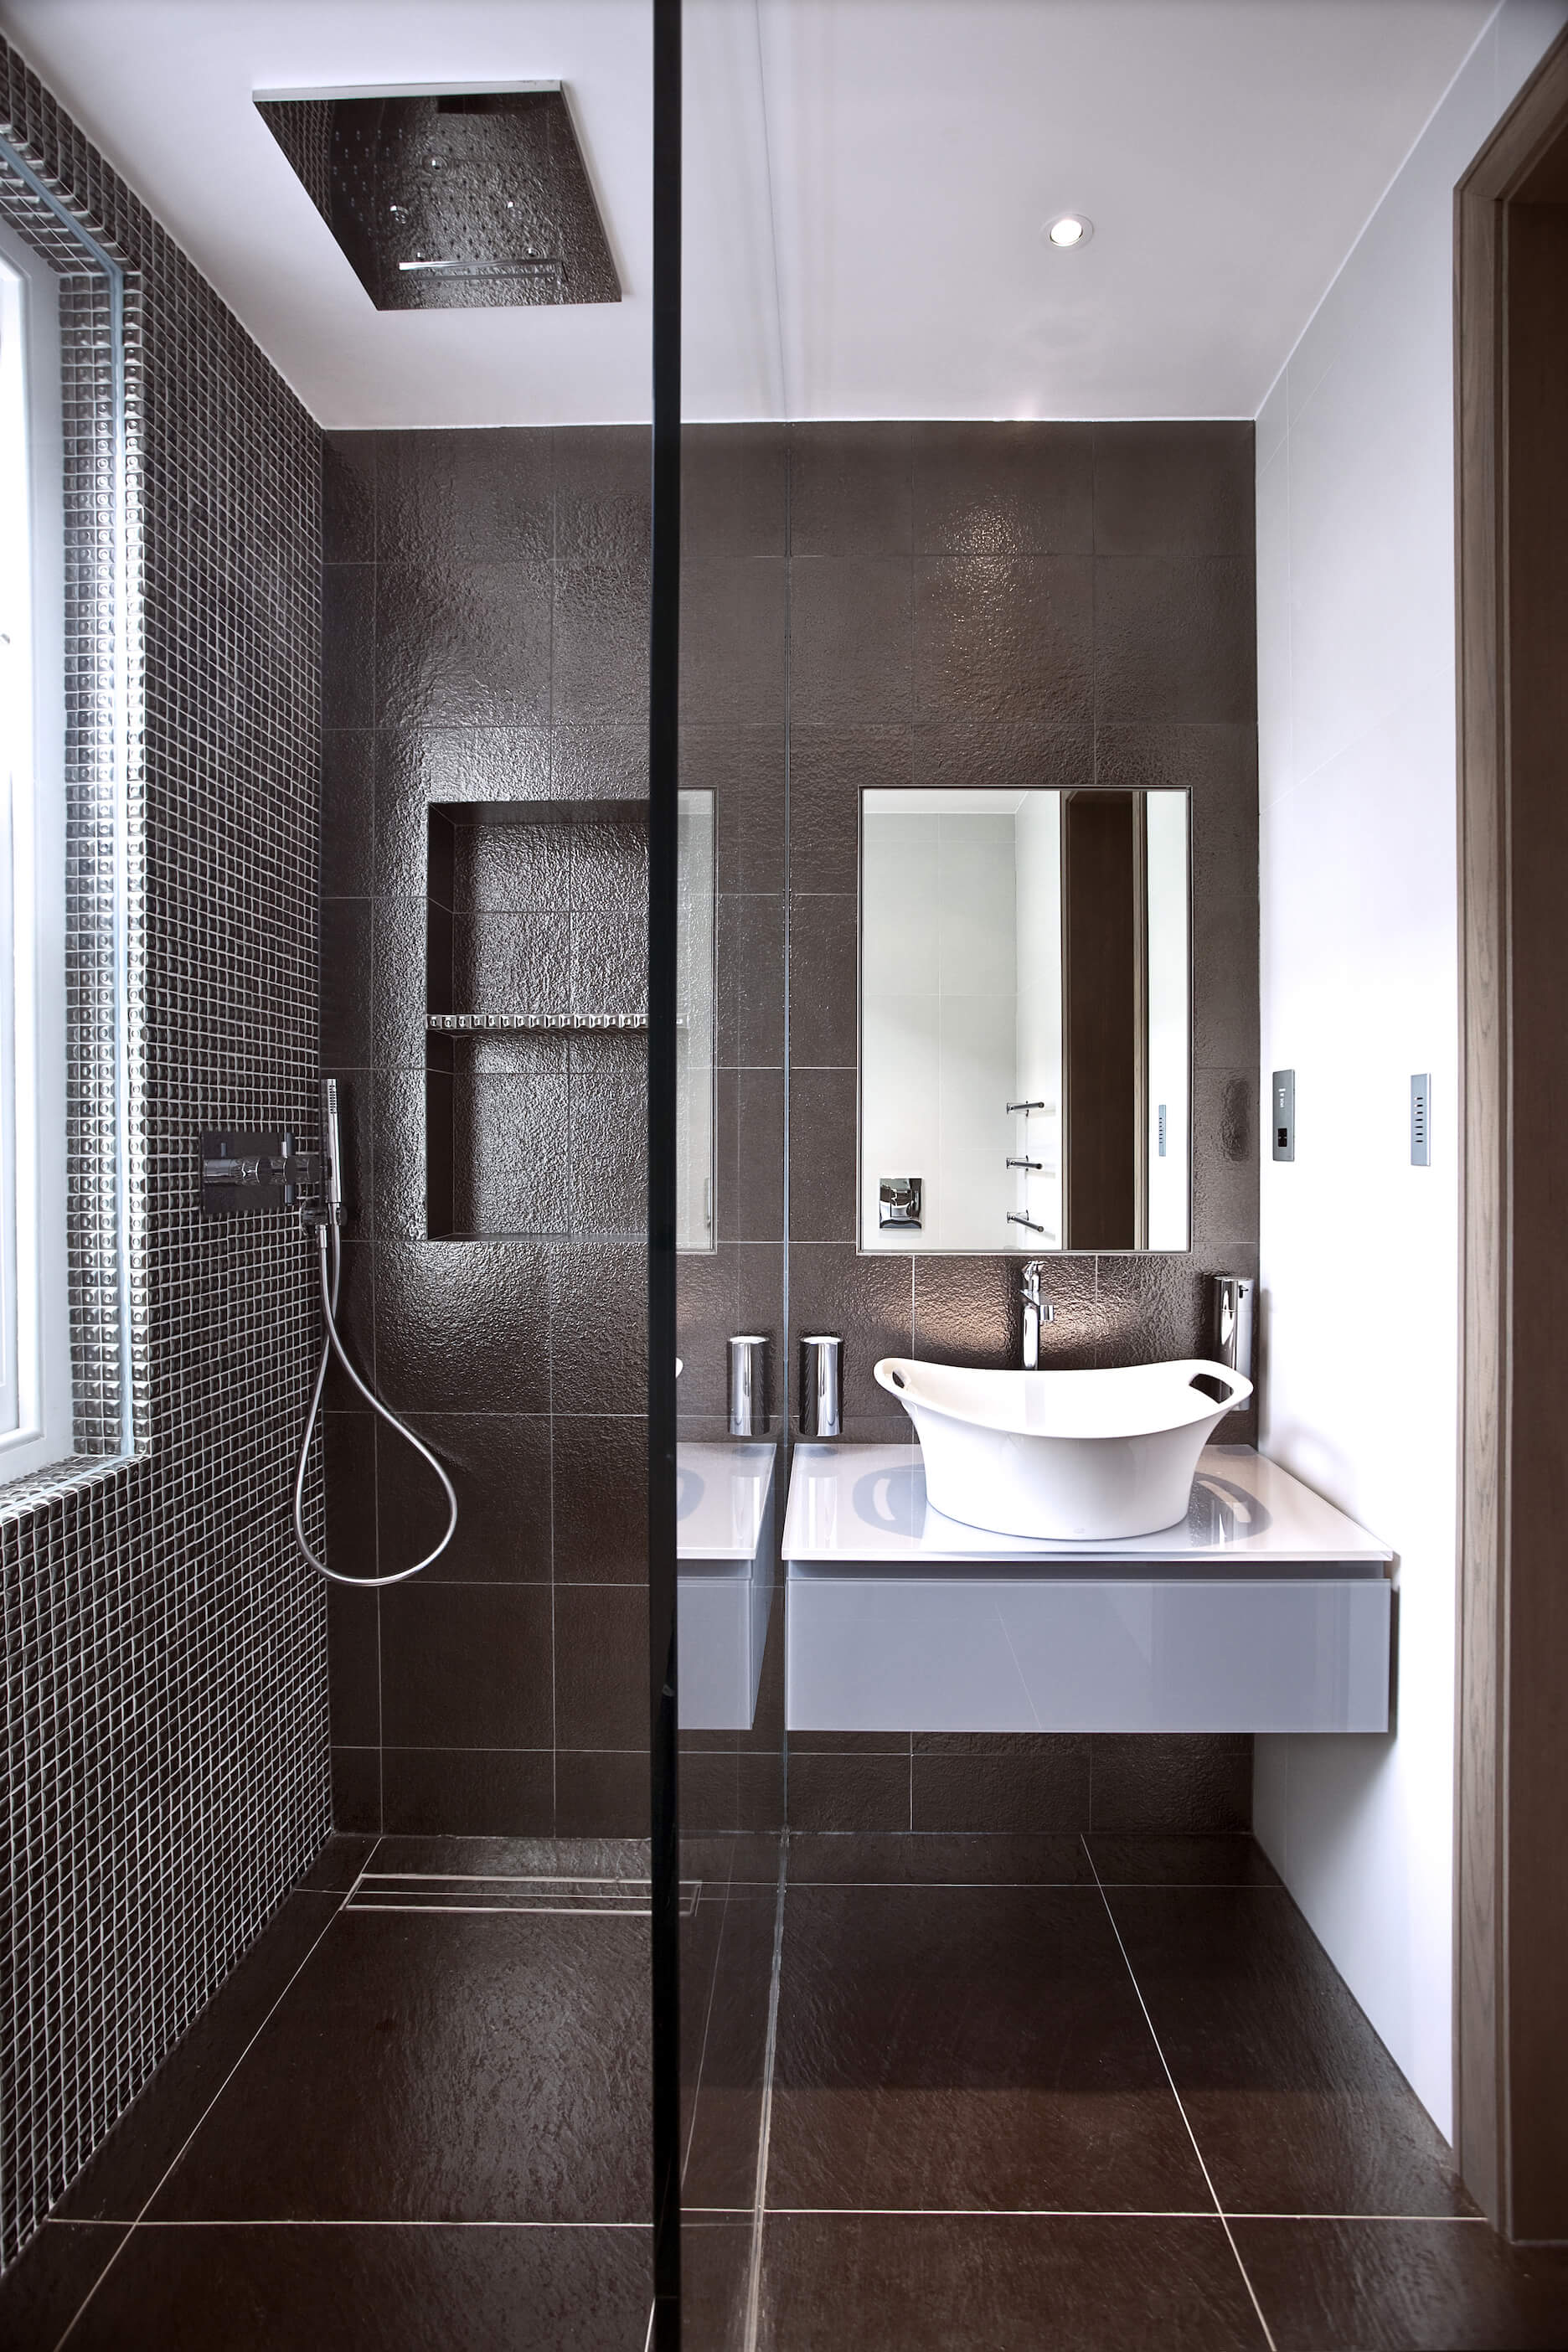 Another bathroom with dark tile flooring holds this compact space, pairing a white floating vanity with handle-rimmed vessel sink next to a glass enclosure shower with rainfall head.